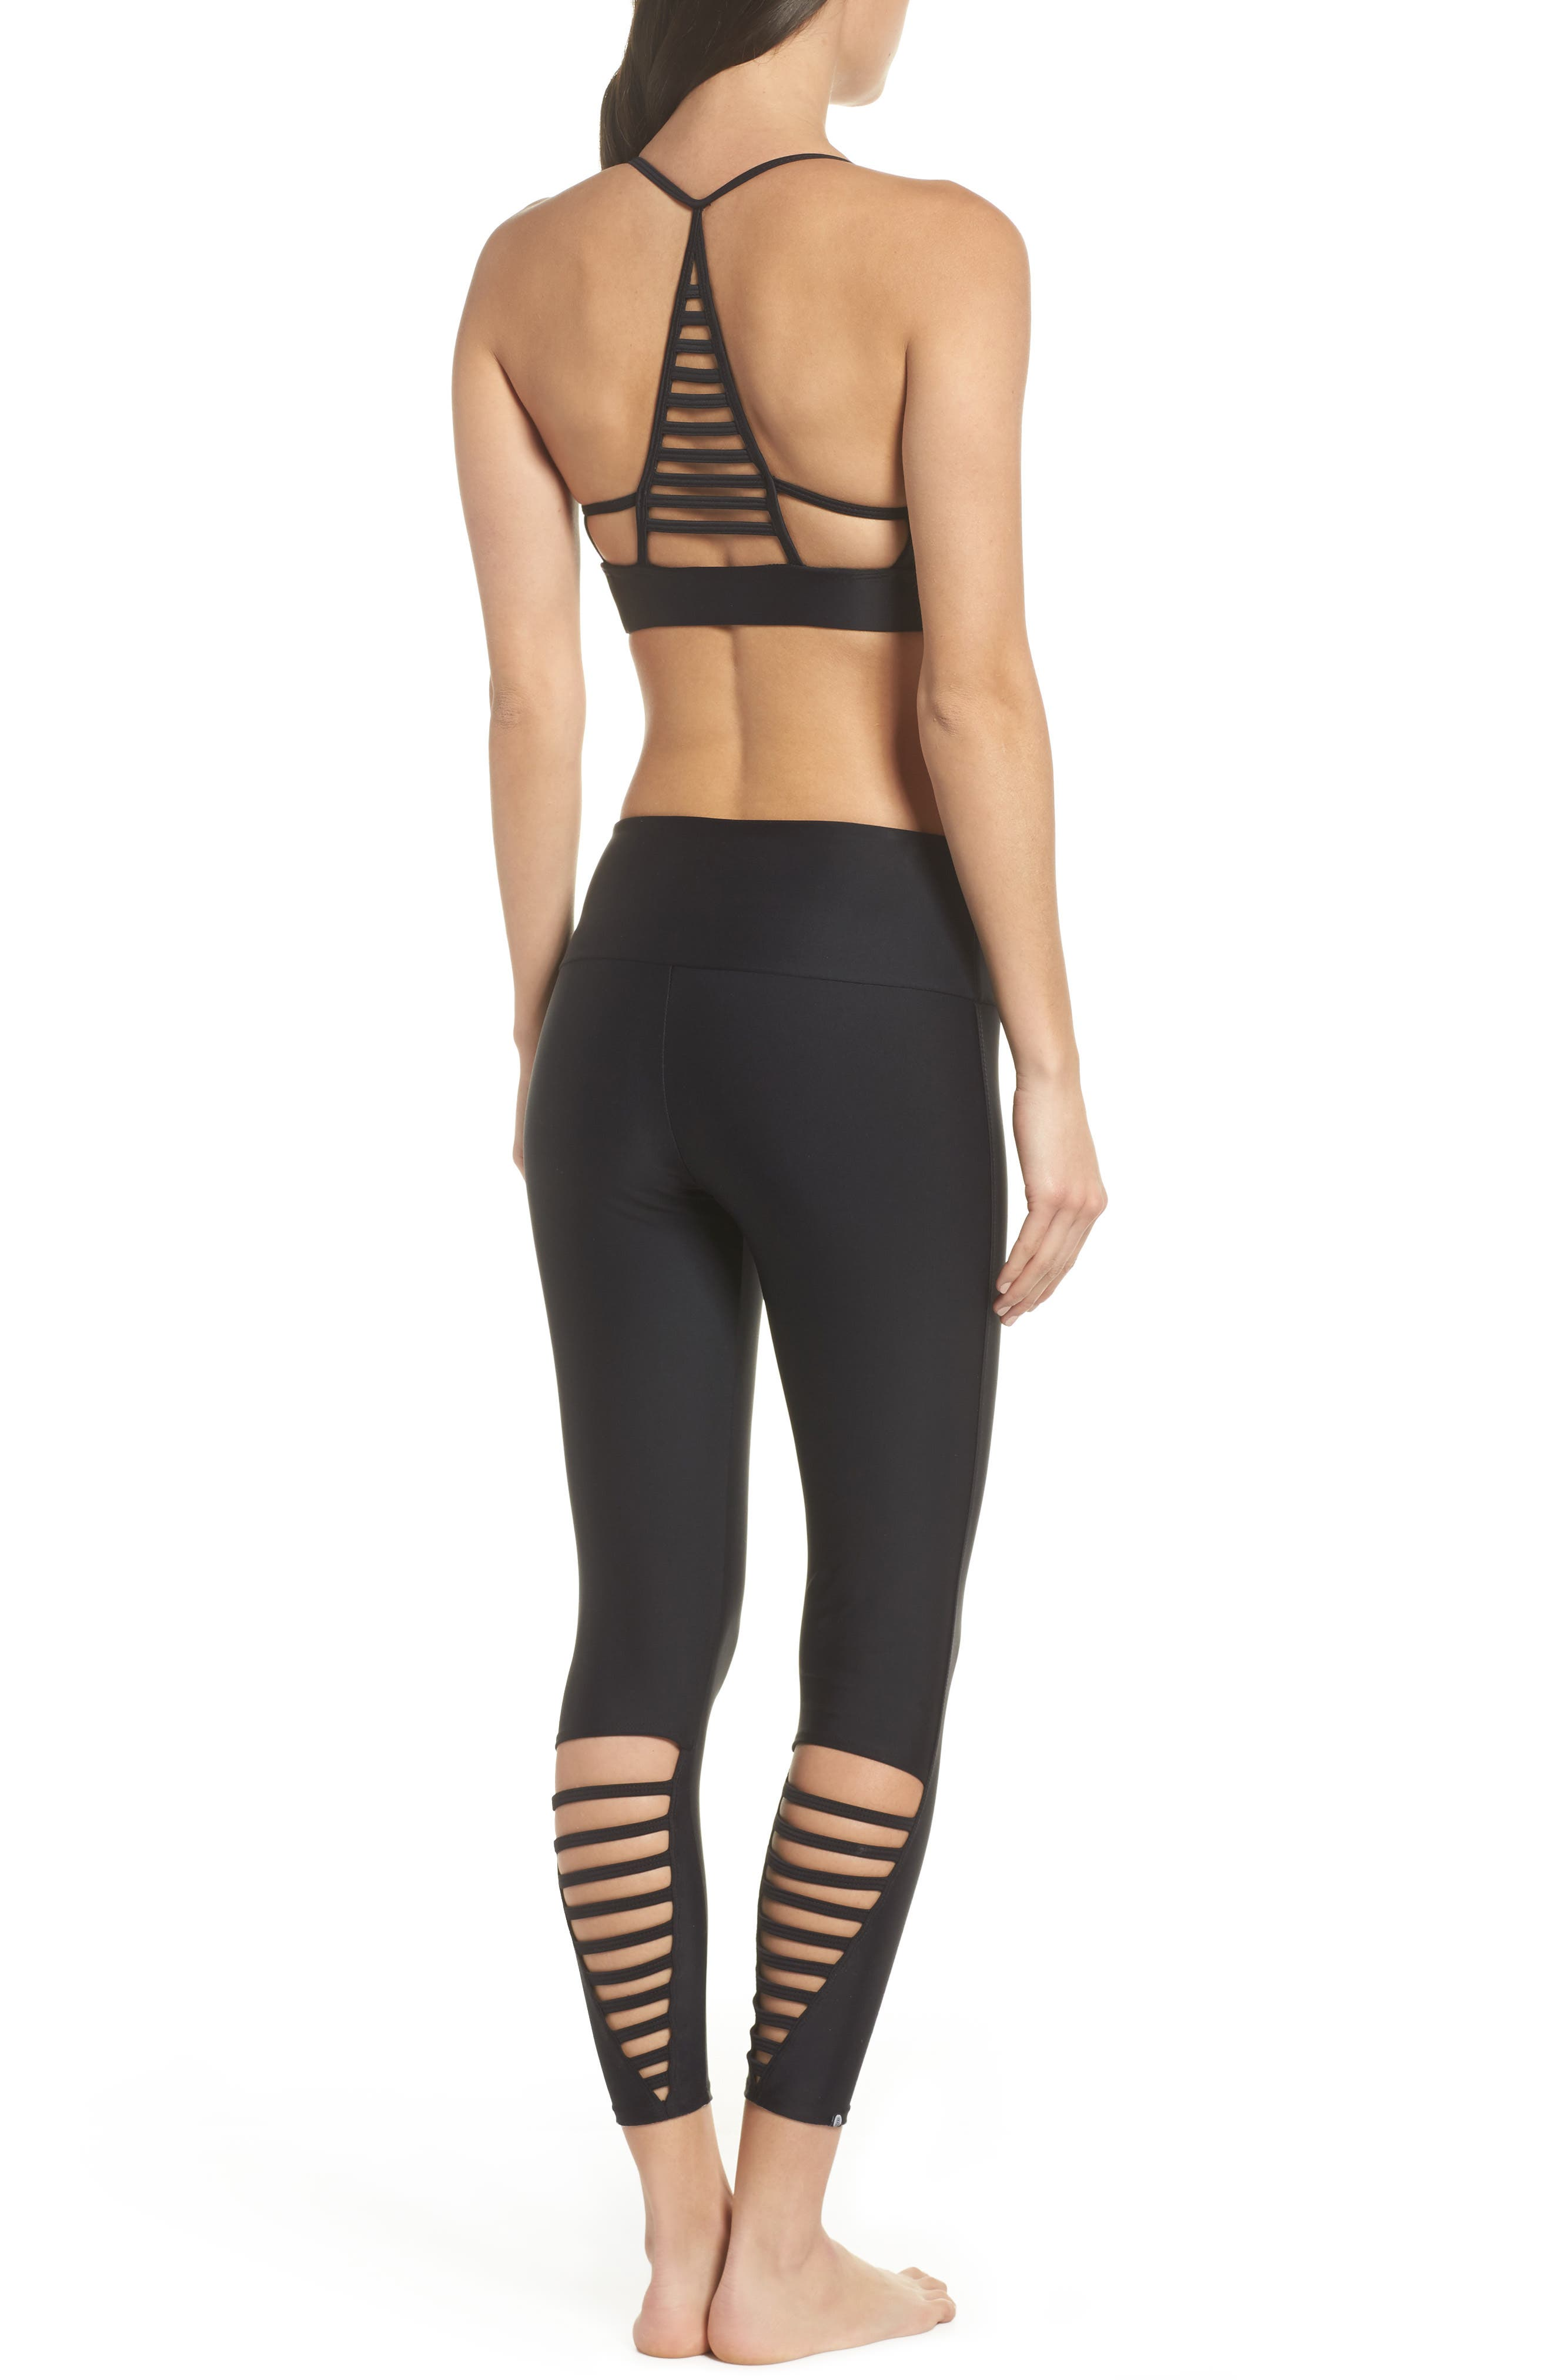 Elevate Sports Bra,                             Alternate thumbnail 8, color,                             001